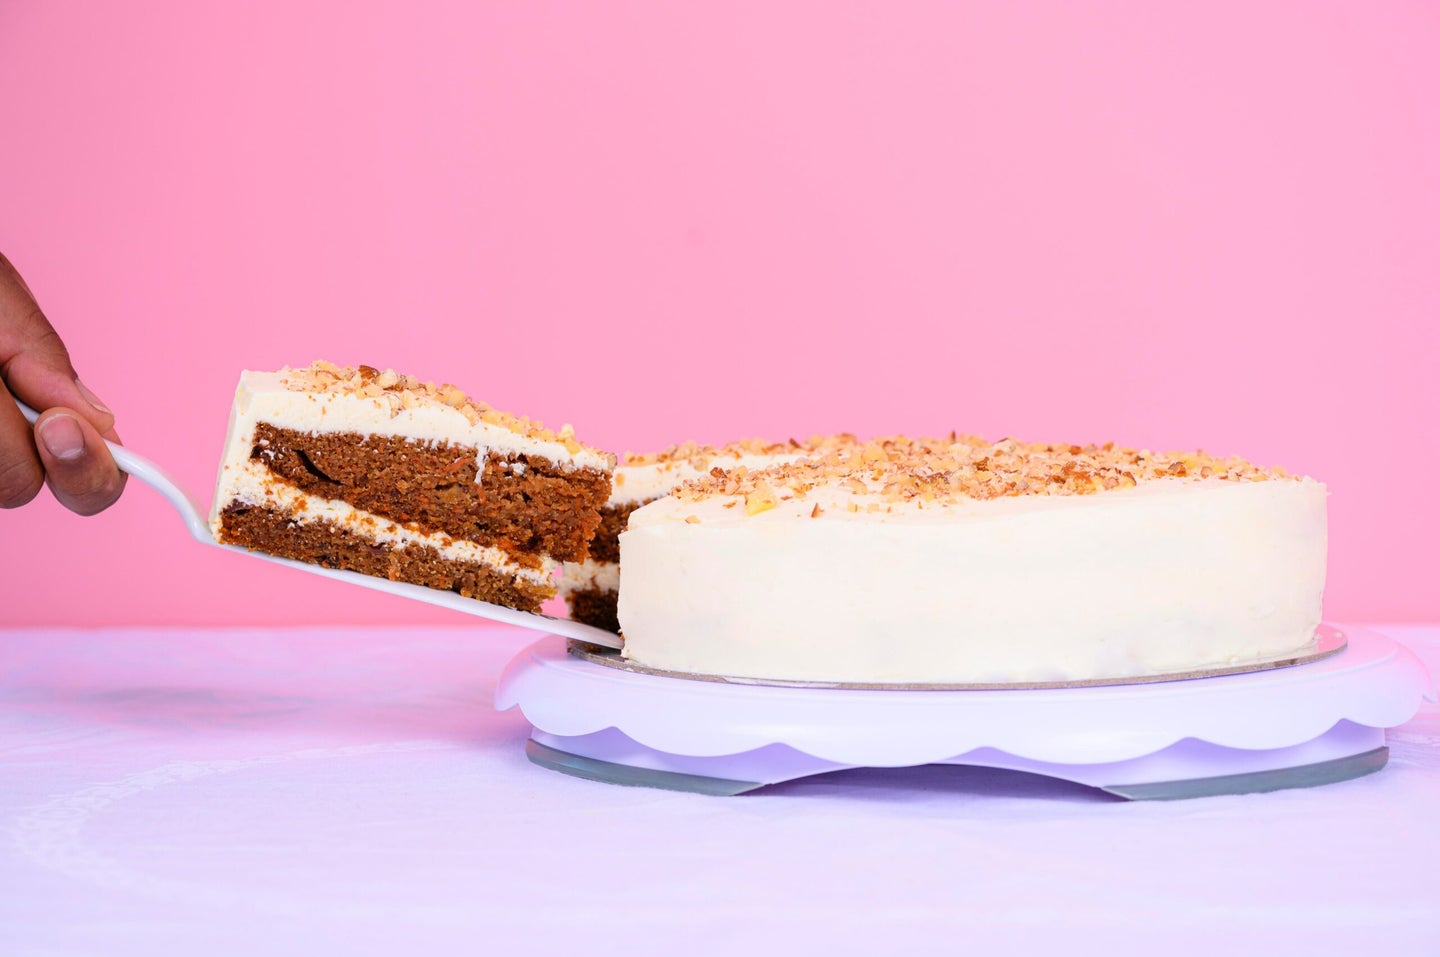 Carrot cake on pink background